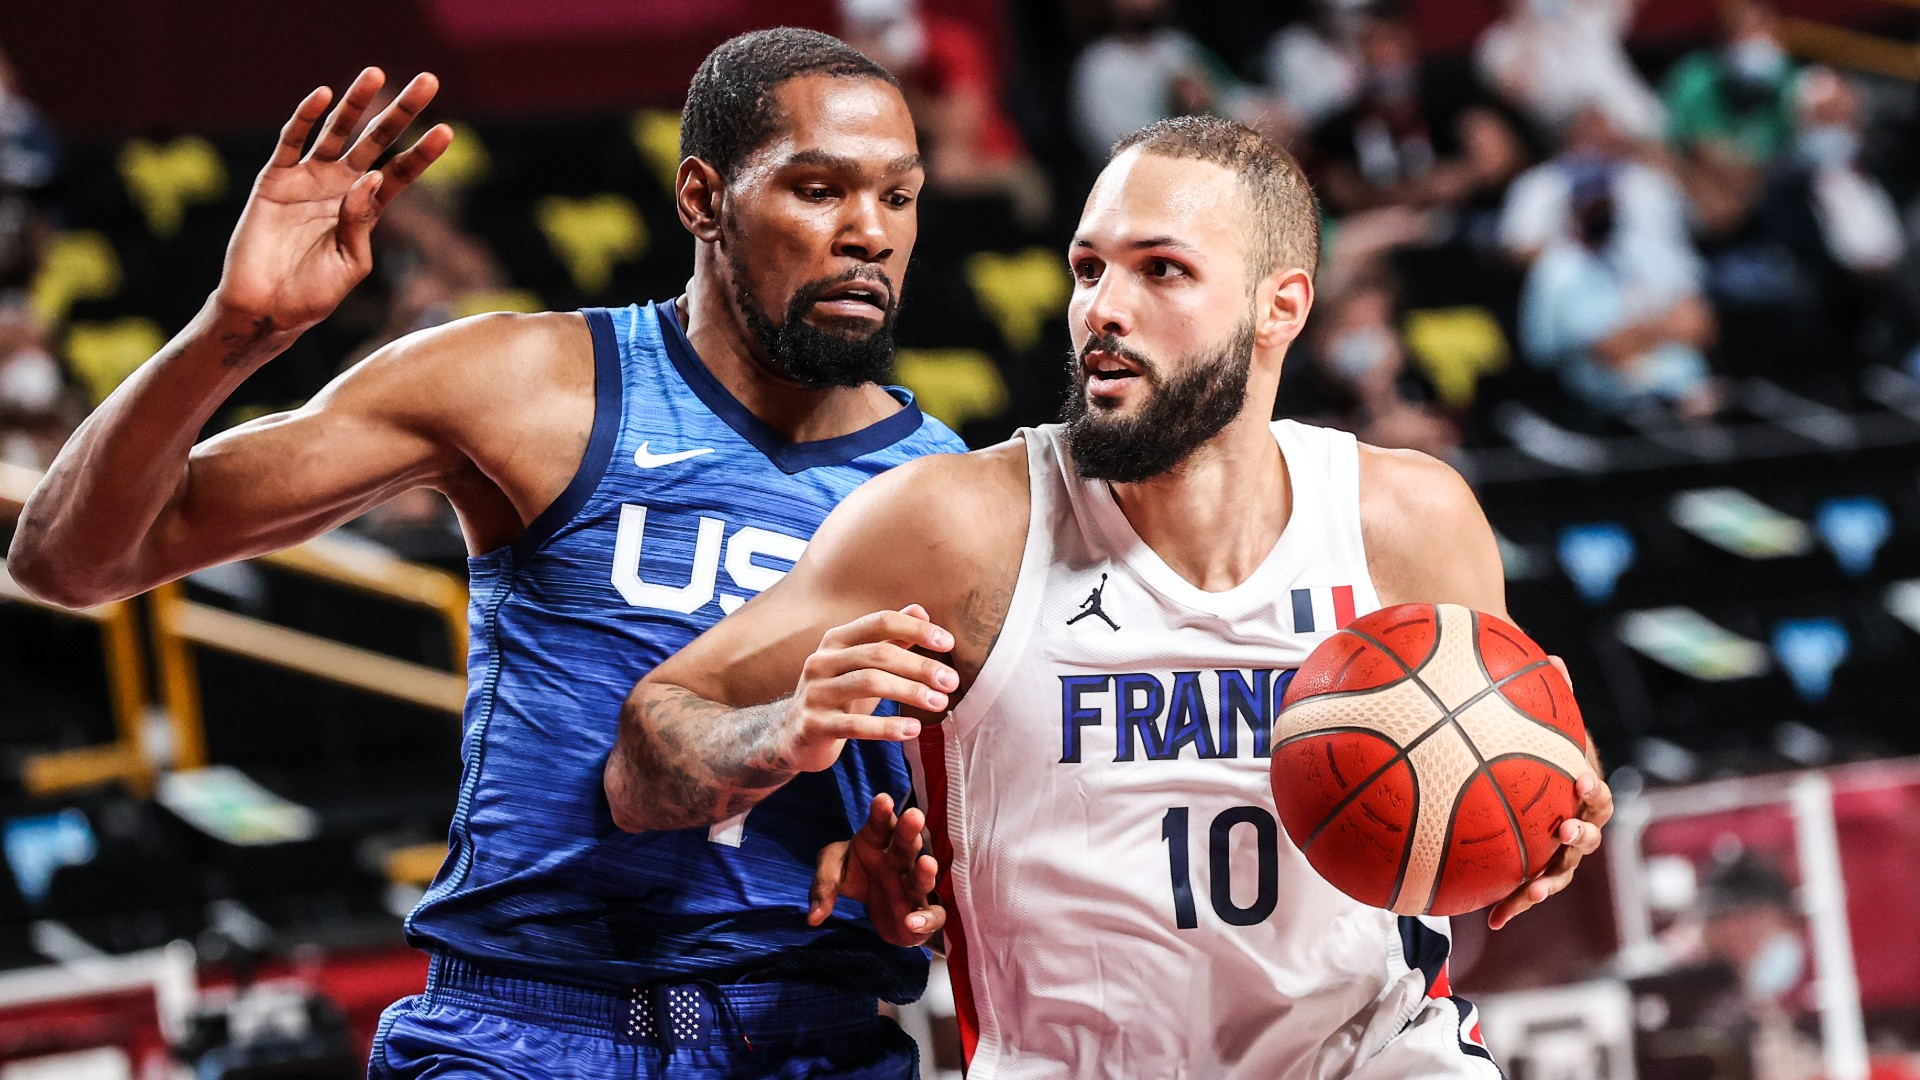 USA Vs. France basketball time, channel and TV schedule to watch the 2021 Olympic gold medal game